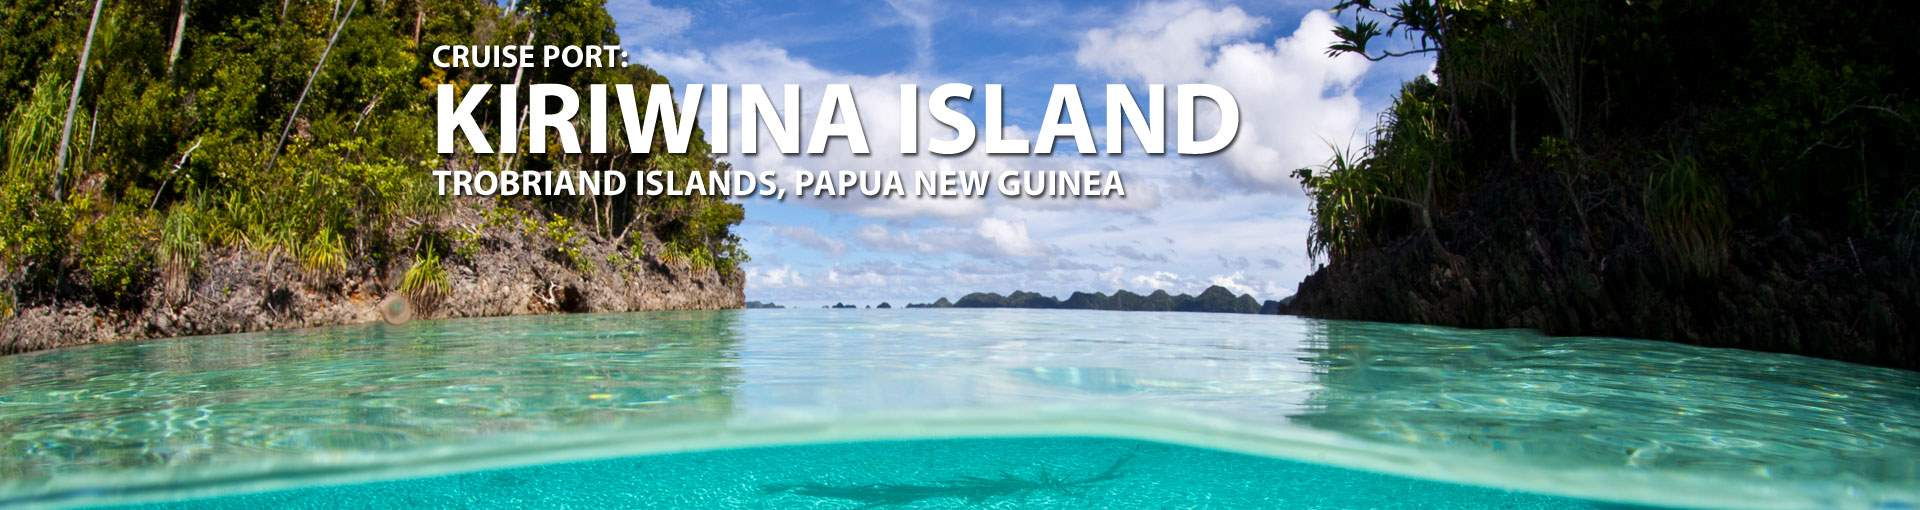 Cruises to Kiriwina Island, Trobriand Islands